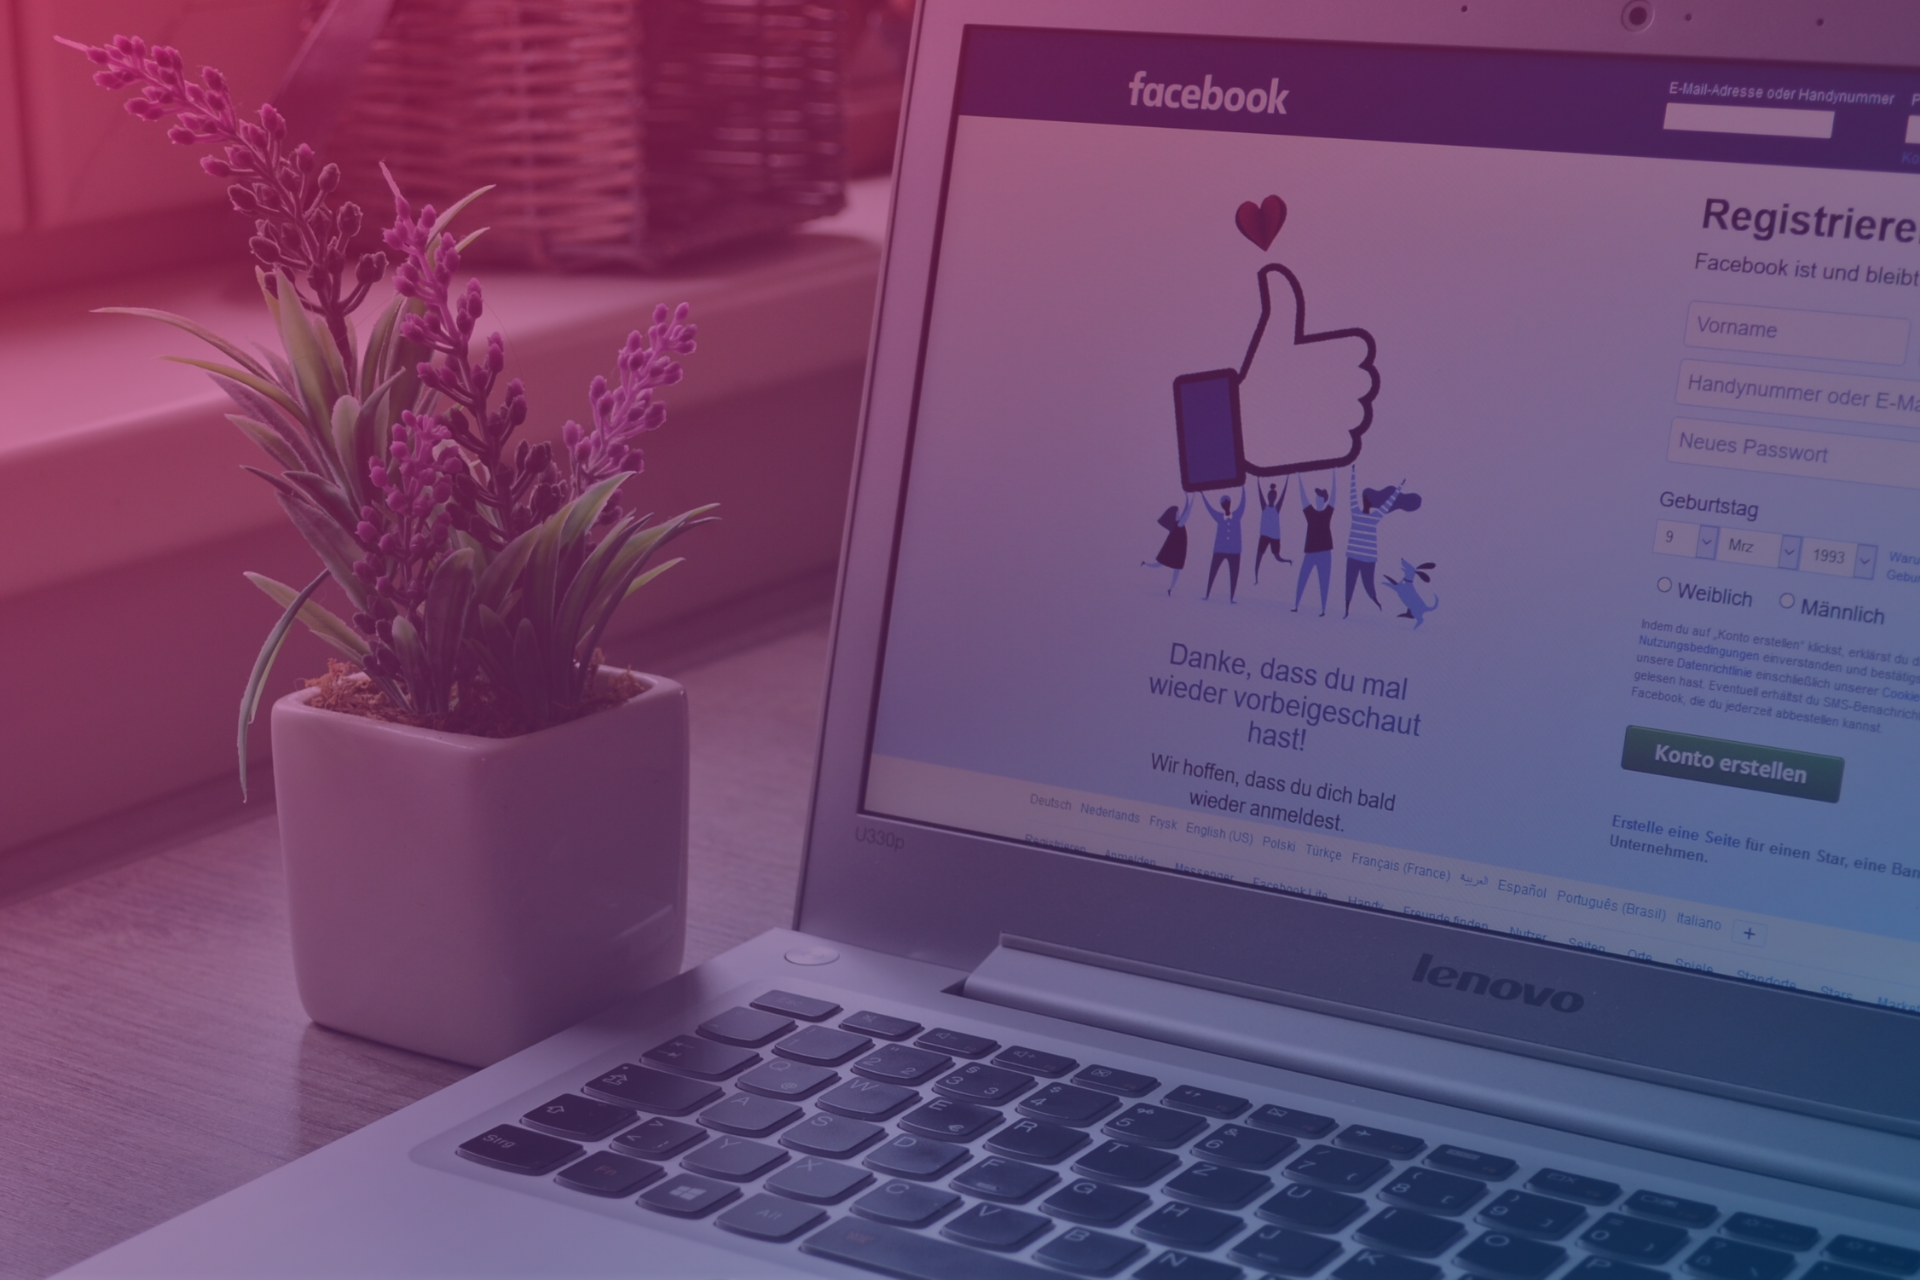 9 1 - What Are The Do's and Don'ts Of Facebook Ads - healthcare-marketing-techniques, healthcare-marketing-strategy, healthcare-marketing-in-new-york, healthcare-marketing-agency, healthcare-digital-marketing